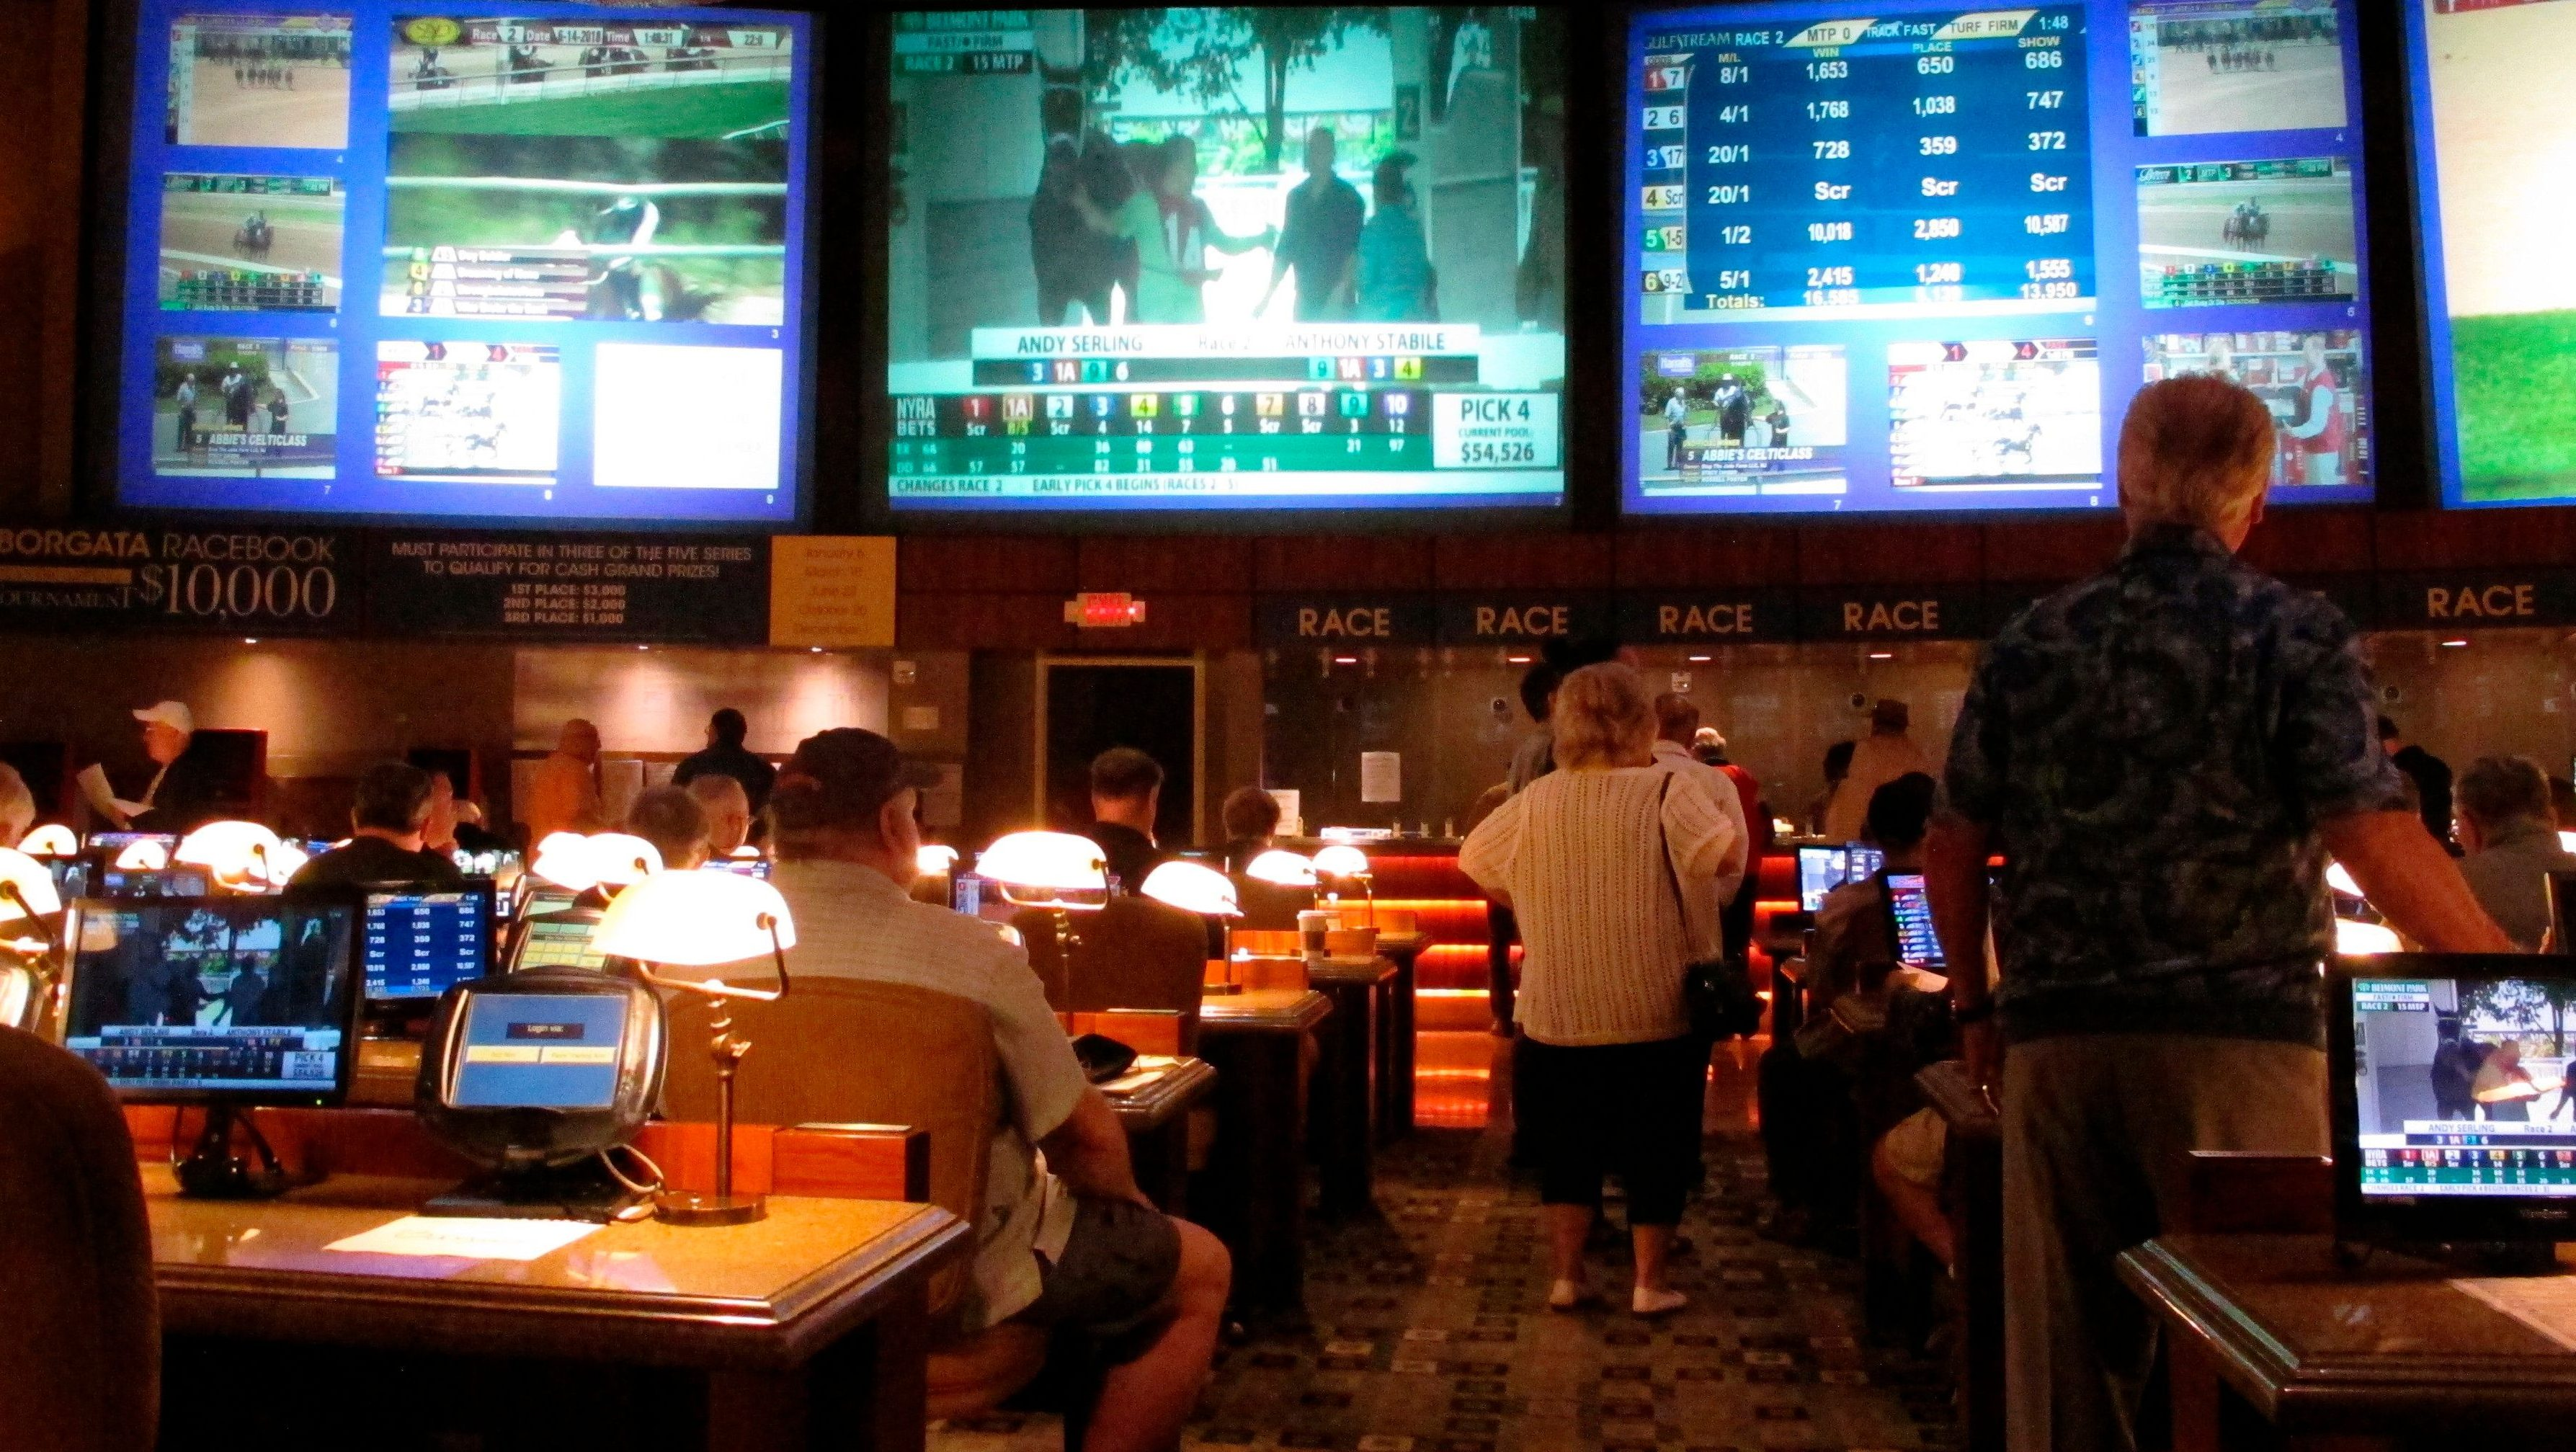 Why sports gambling should not be legal poker tournament videos 2017